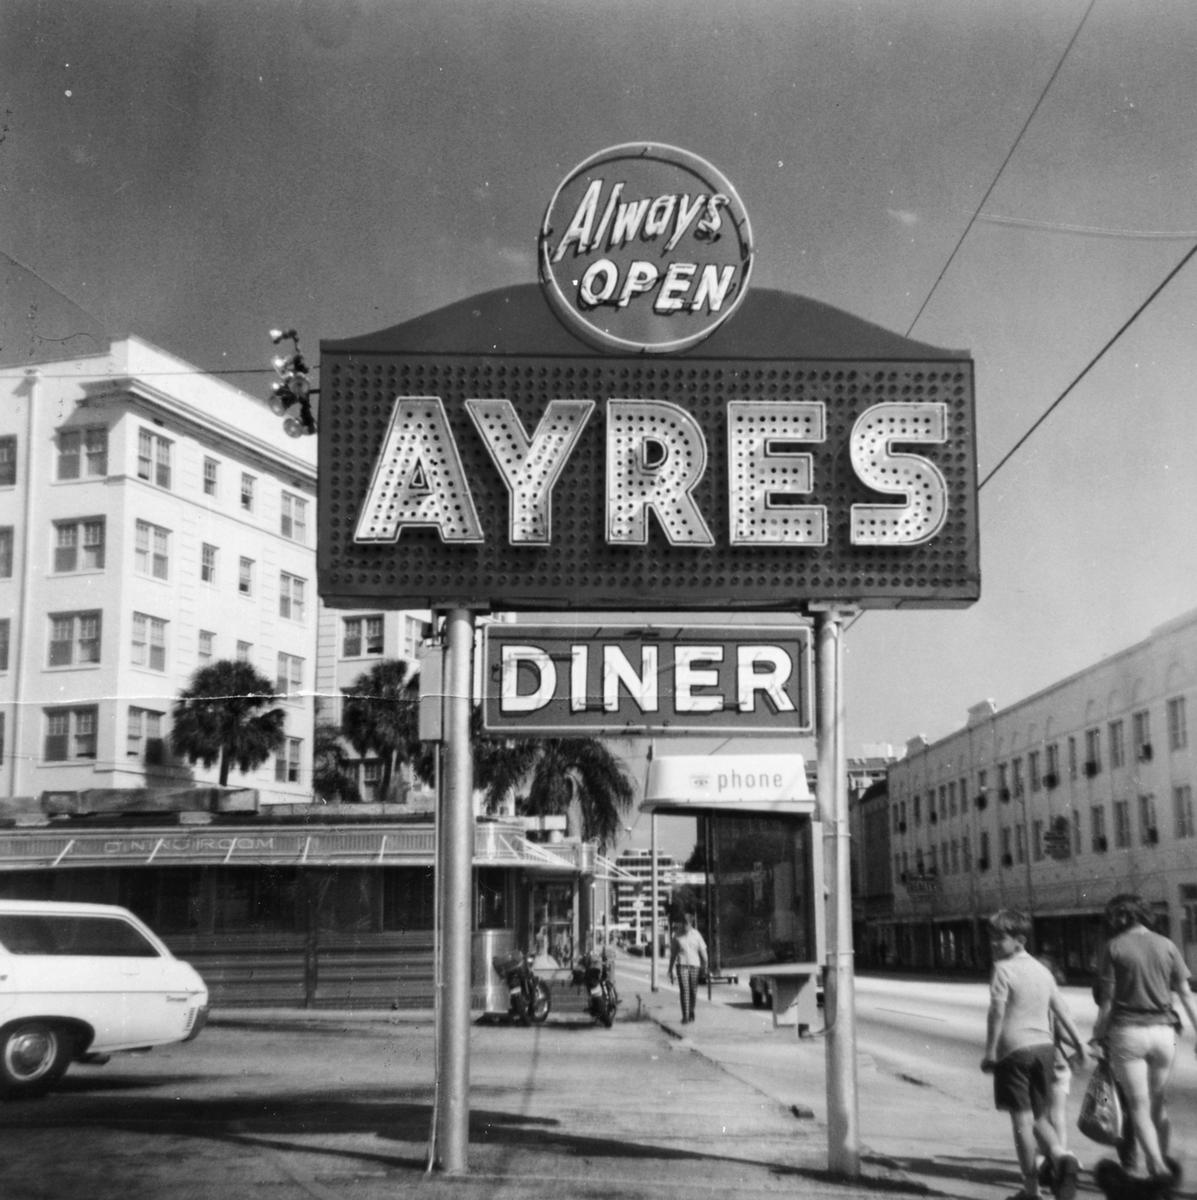 "1963-Ayres Diner on Grand Central-(now Kennedy Blvd). This was Tampa's most famous 1950s diner! This photo is among 200 in my new book ""Vintage Tampa Signs and Scenes"".  Everyone remembers this neat diner!"